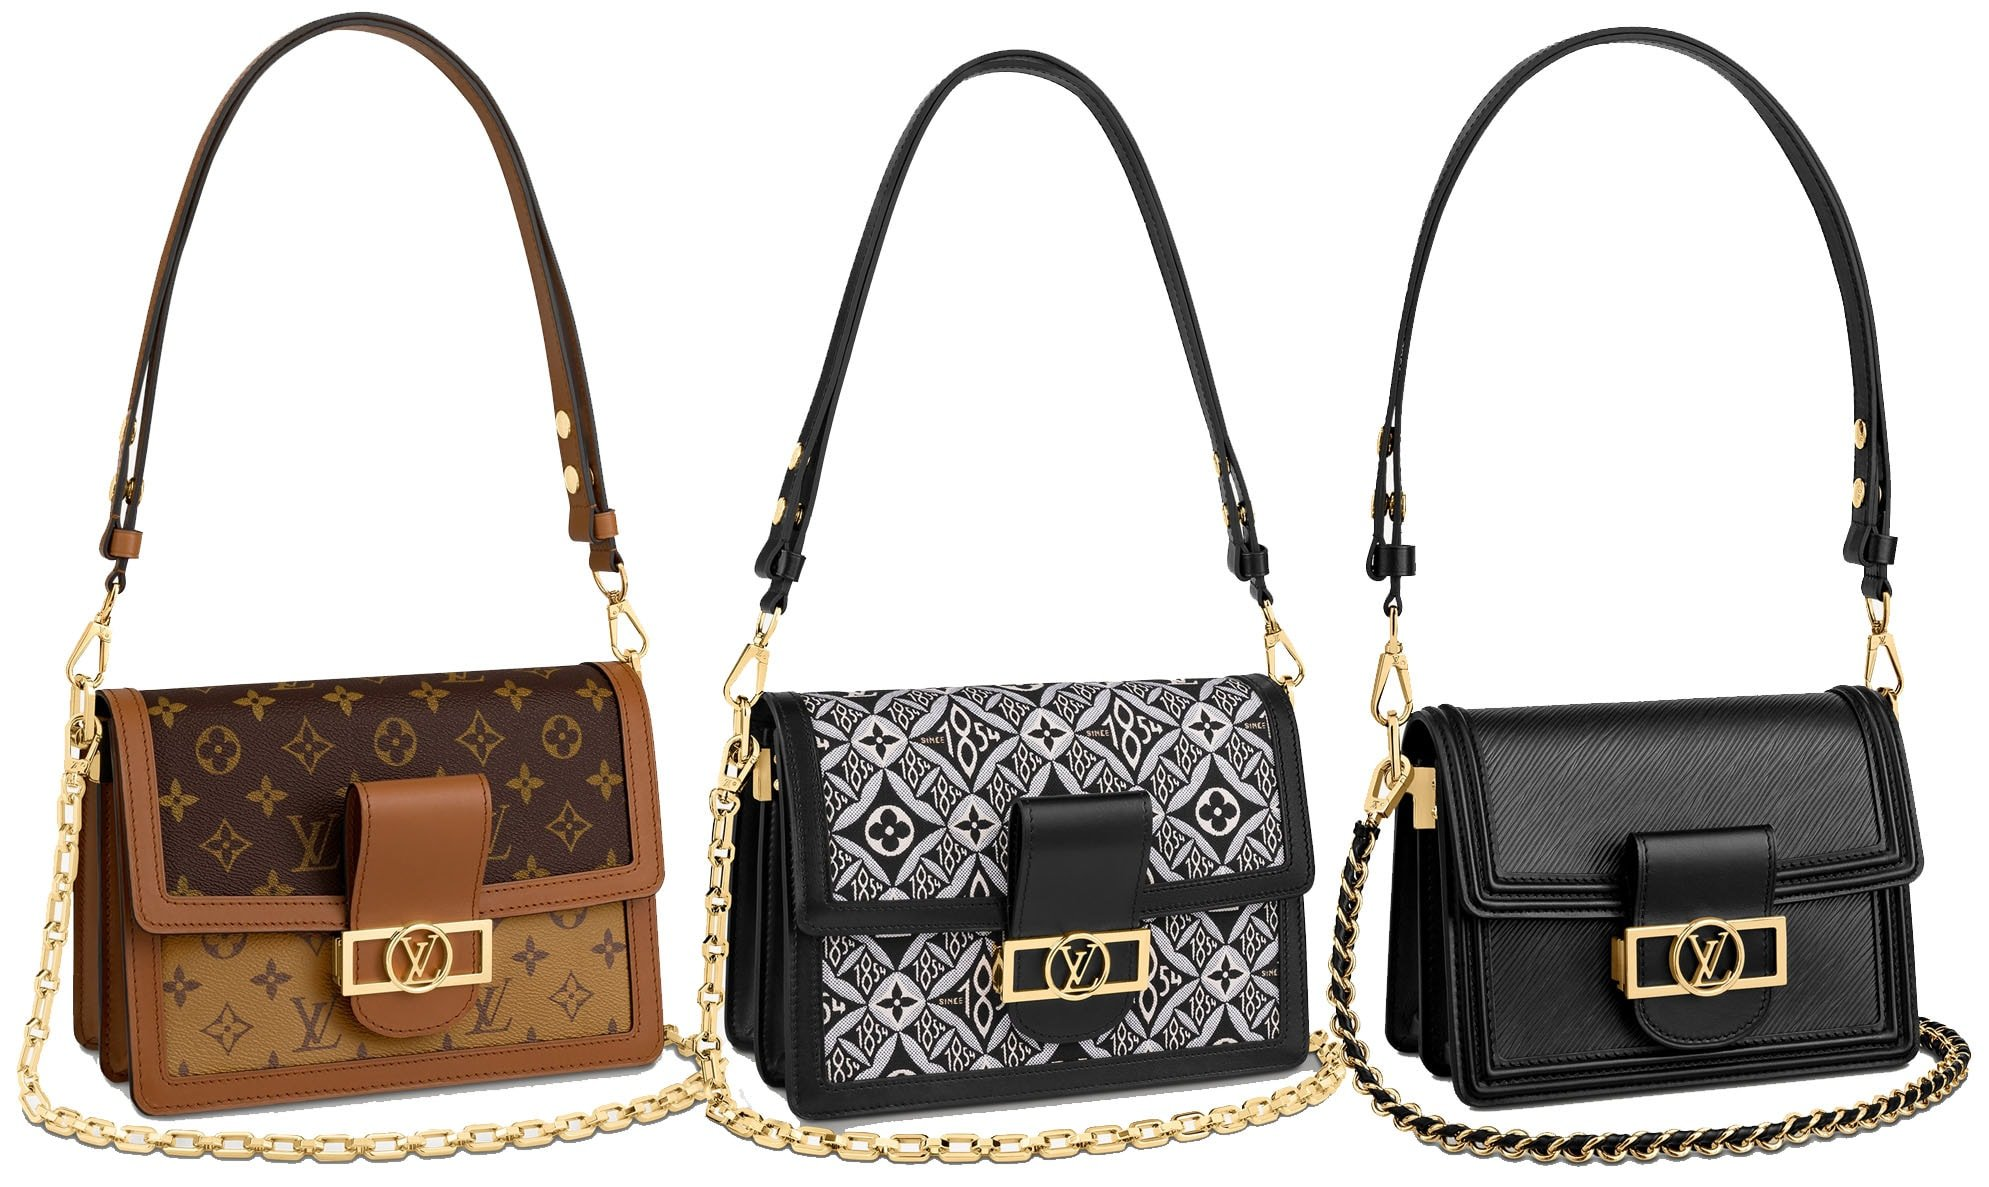 The Dauphine bag is considered the latest it bag and is updated with a chain strap and a magnetized lock